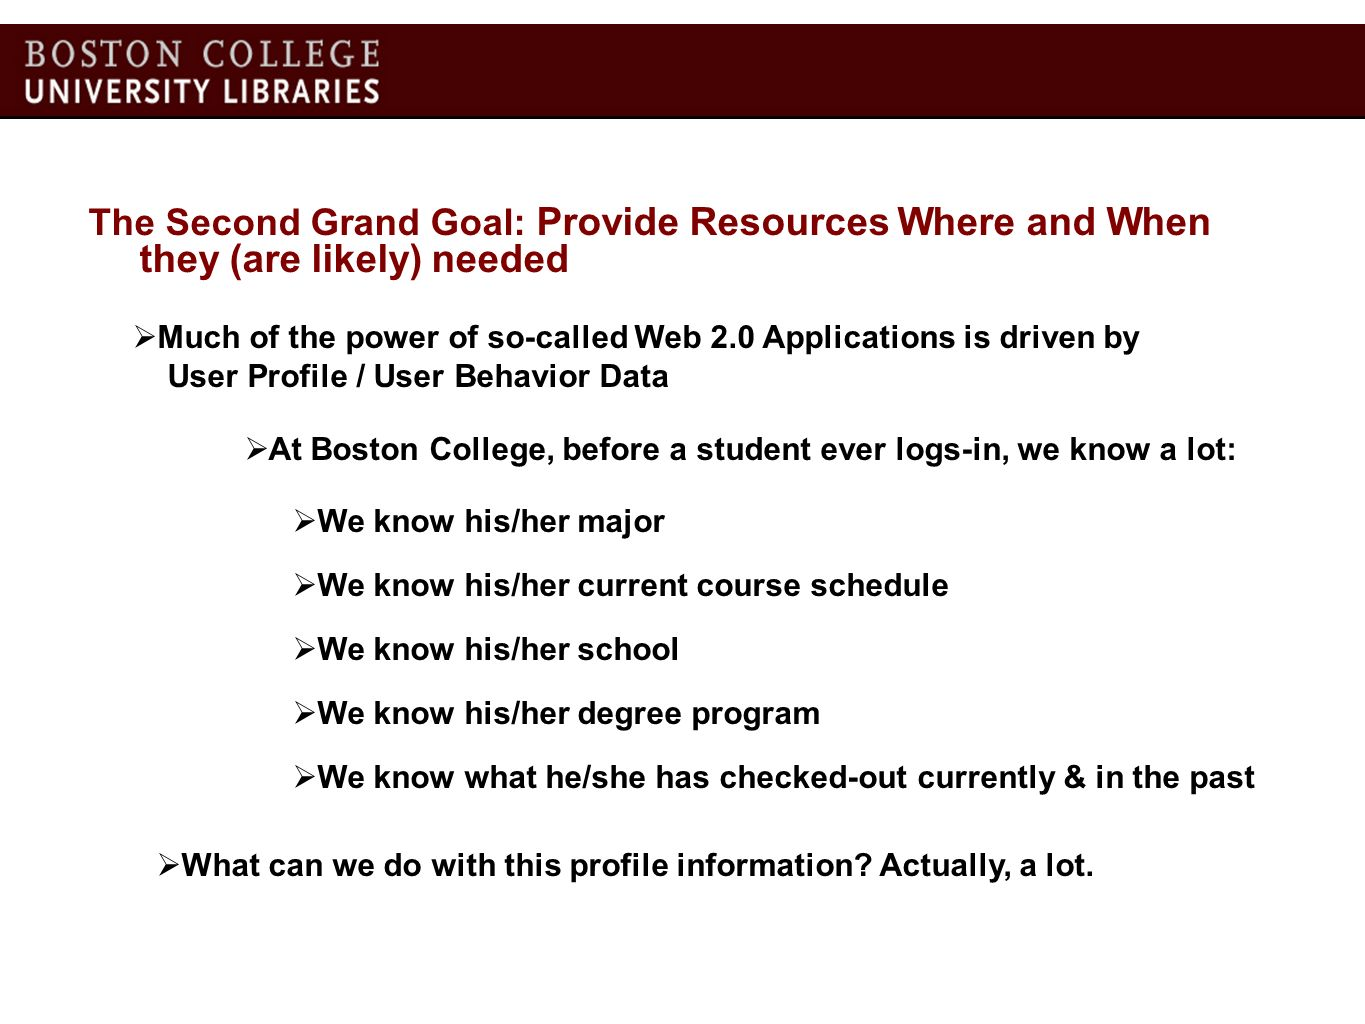 The Second Grand Goal: Provide Resources Where and When they (are likely) needed Much of the power of so-called Web 2.0 Applications is driven by User